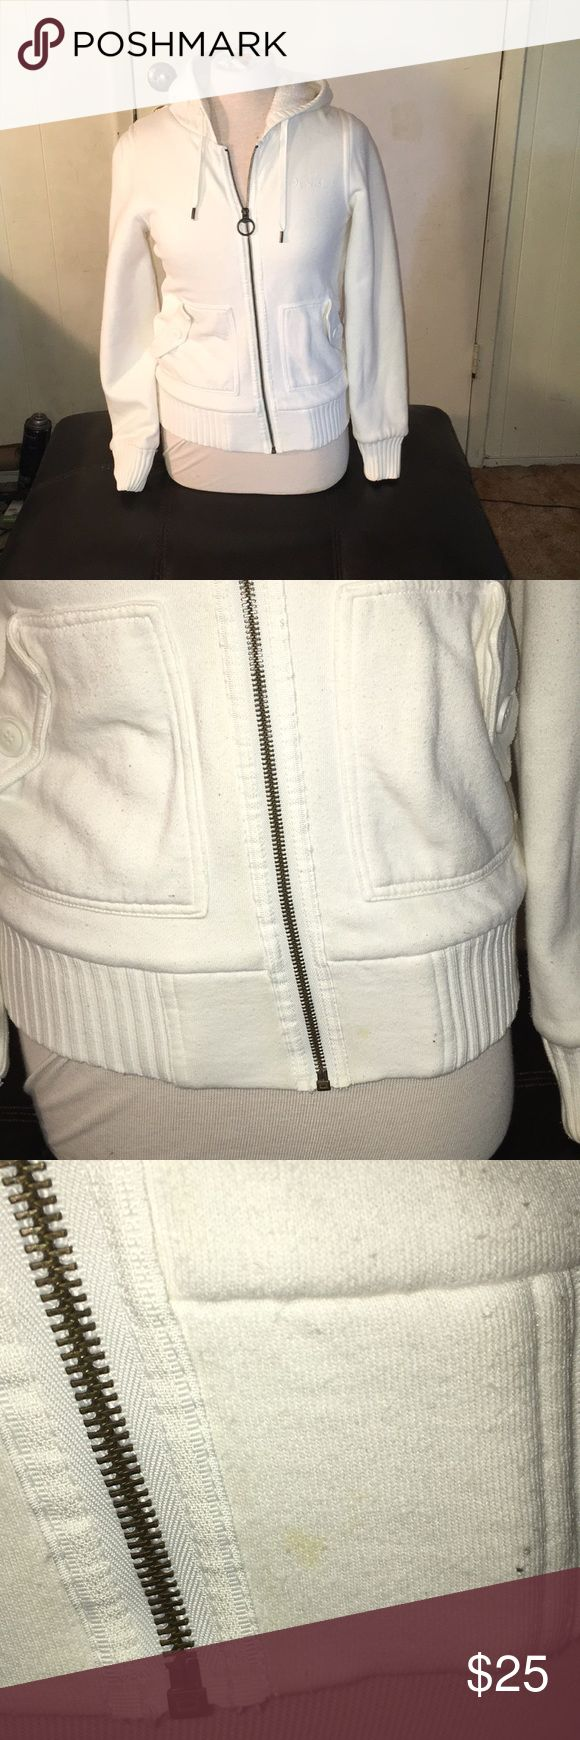 Vans beige thick zip up hoodie S Cute, super comfy Vans cream sweater. Pre-loved condition. I inspected as best I could, but please note this is a beige, off white color. There could be some slight over sight, but over all with inspection I found 1 tiny spot as pictured, tiny pin size hole above pocket and minor piling. My sister in law didn't really wear it much. Size small, great to keep warm this winter! Vans Sweaters